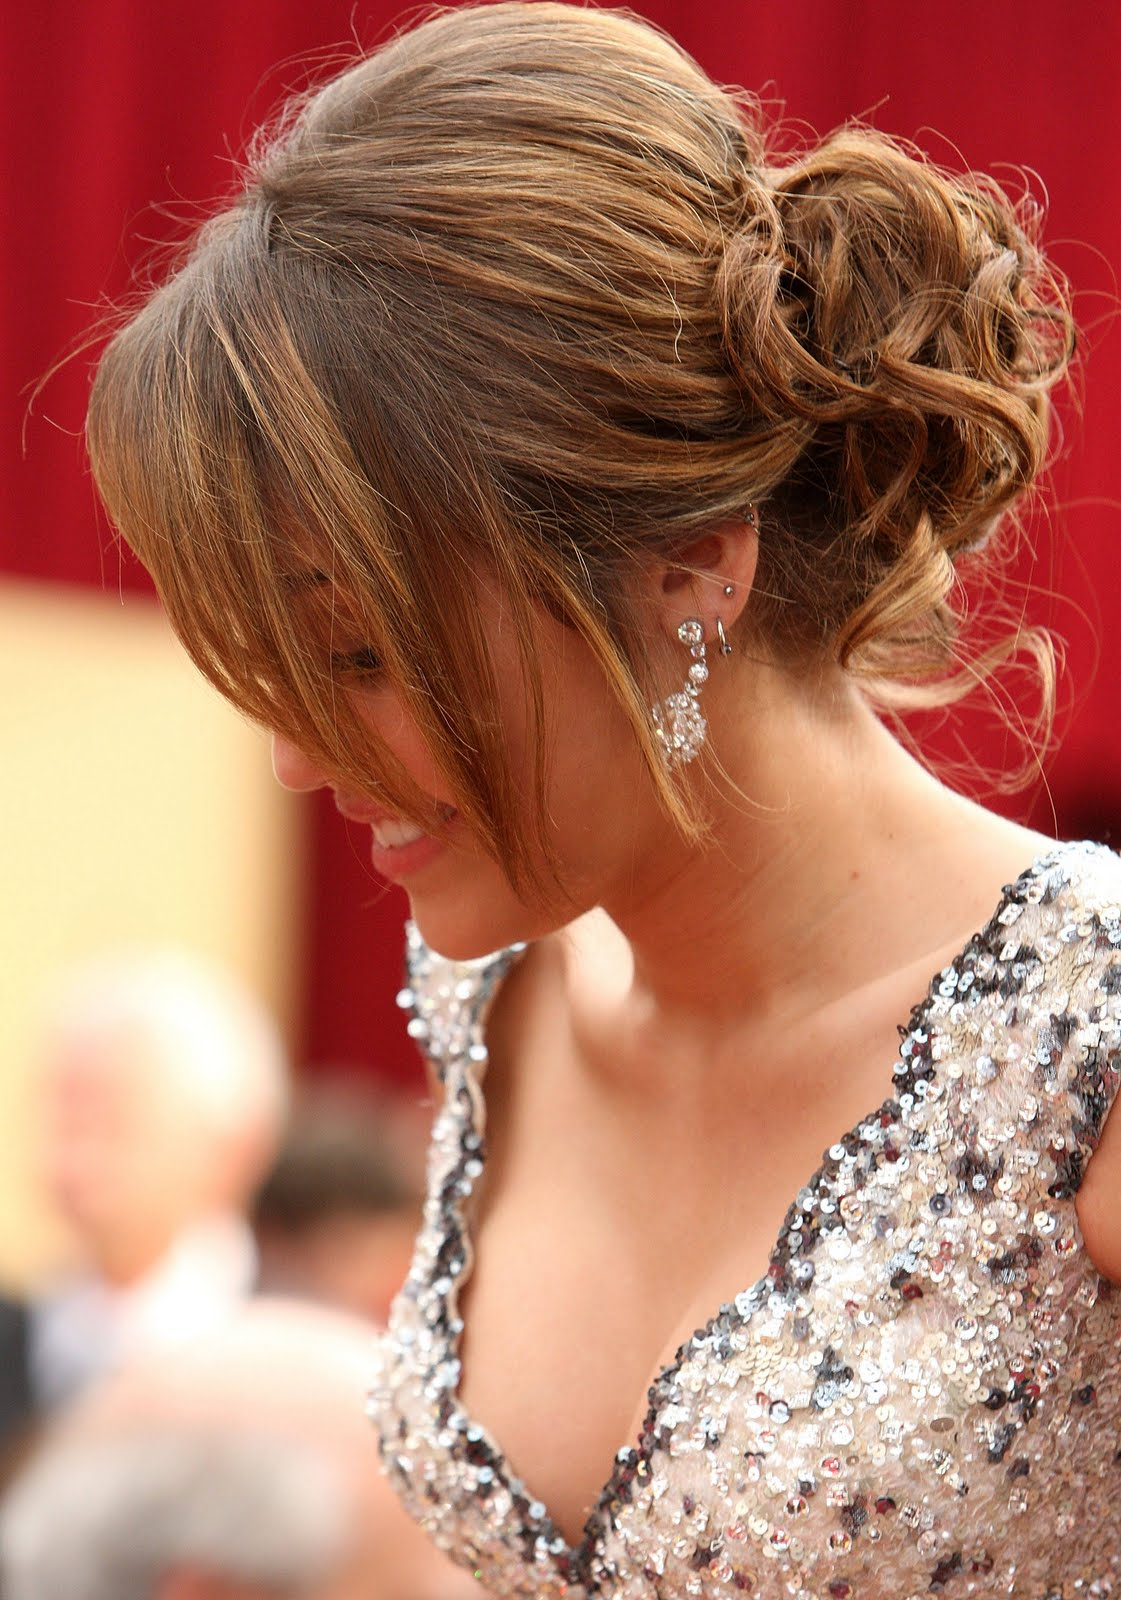 15 Cute Hairstyles For Prom 2014